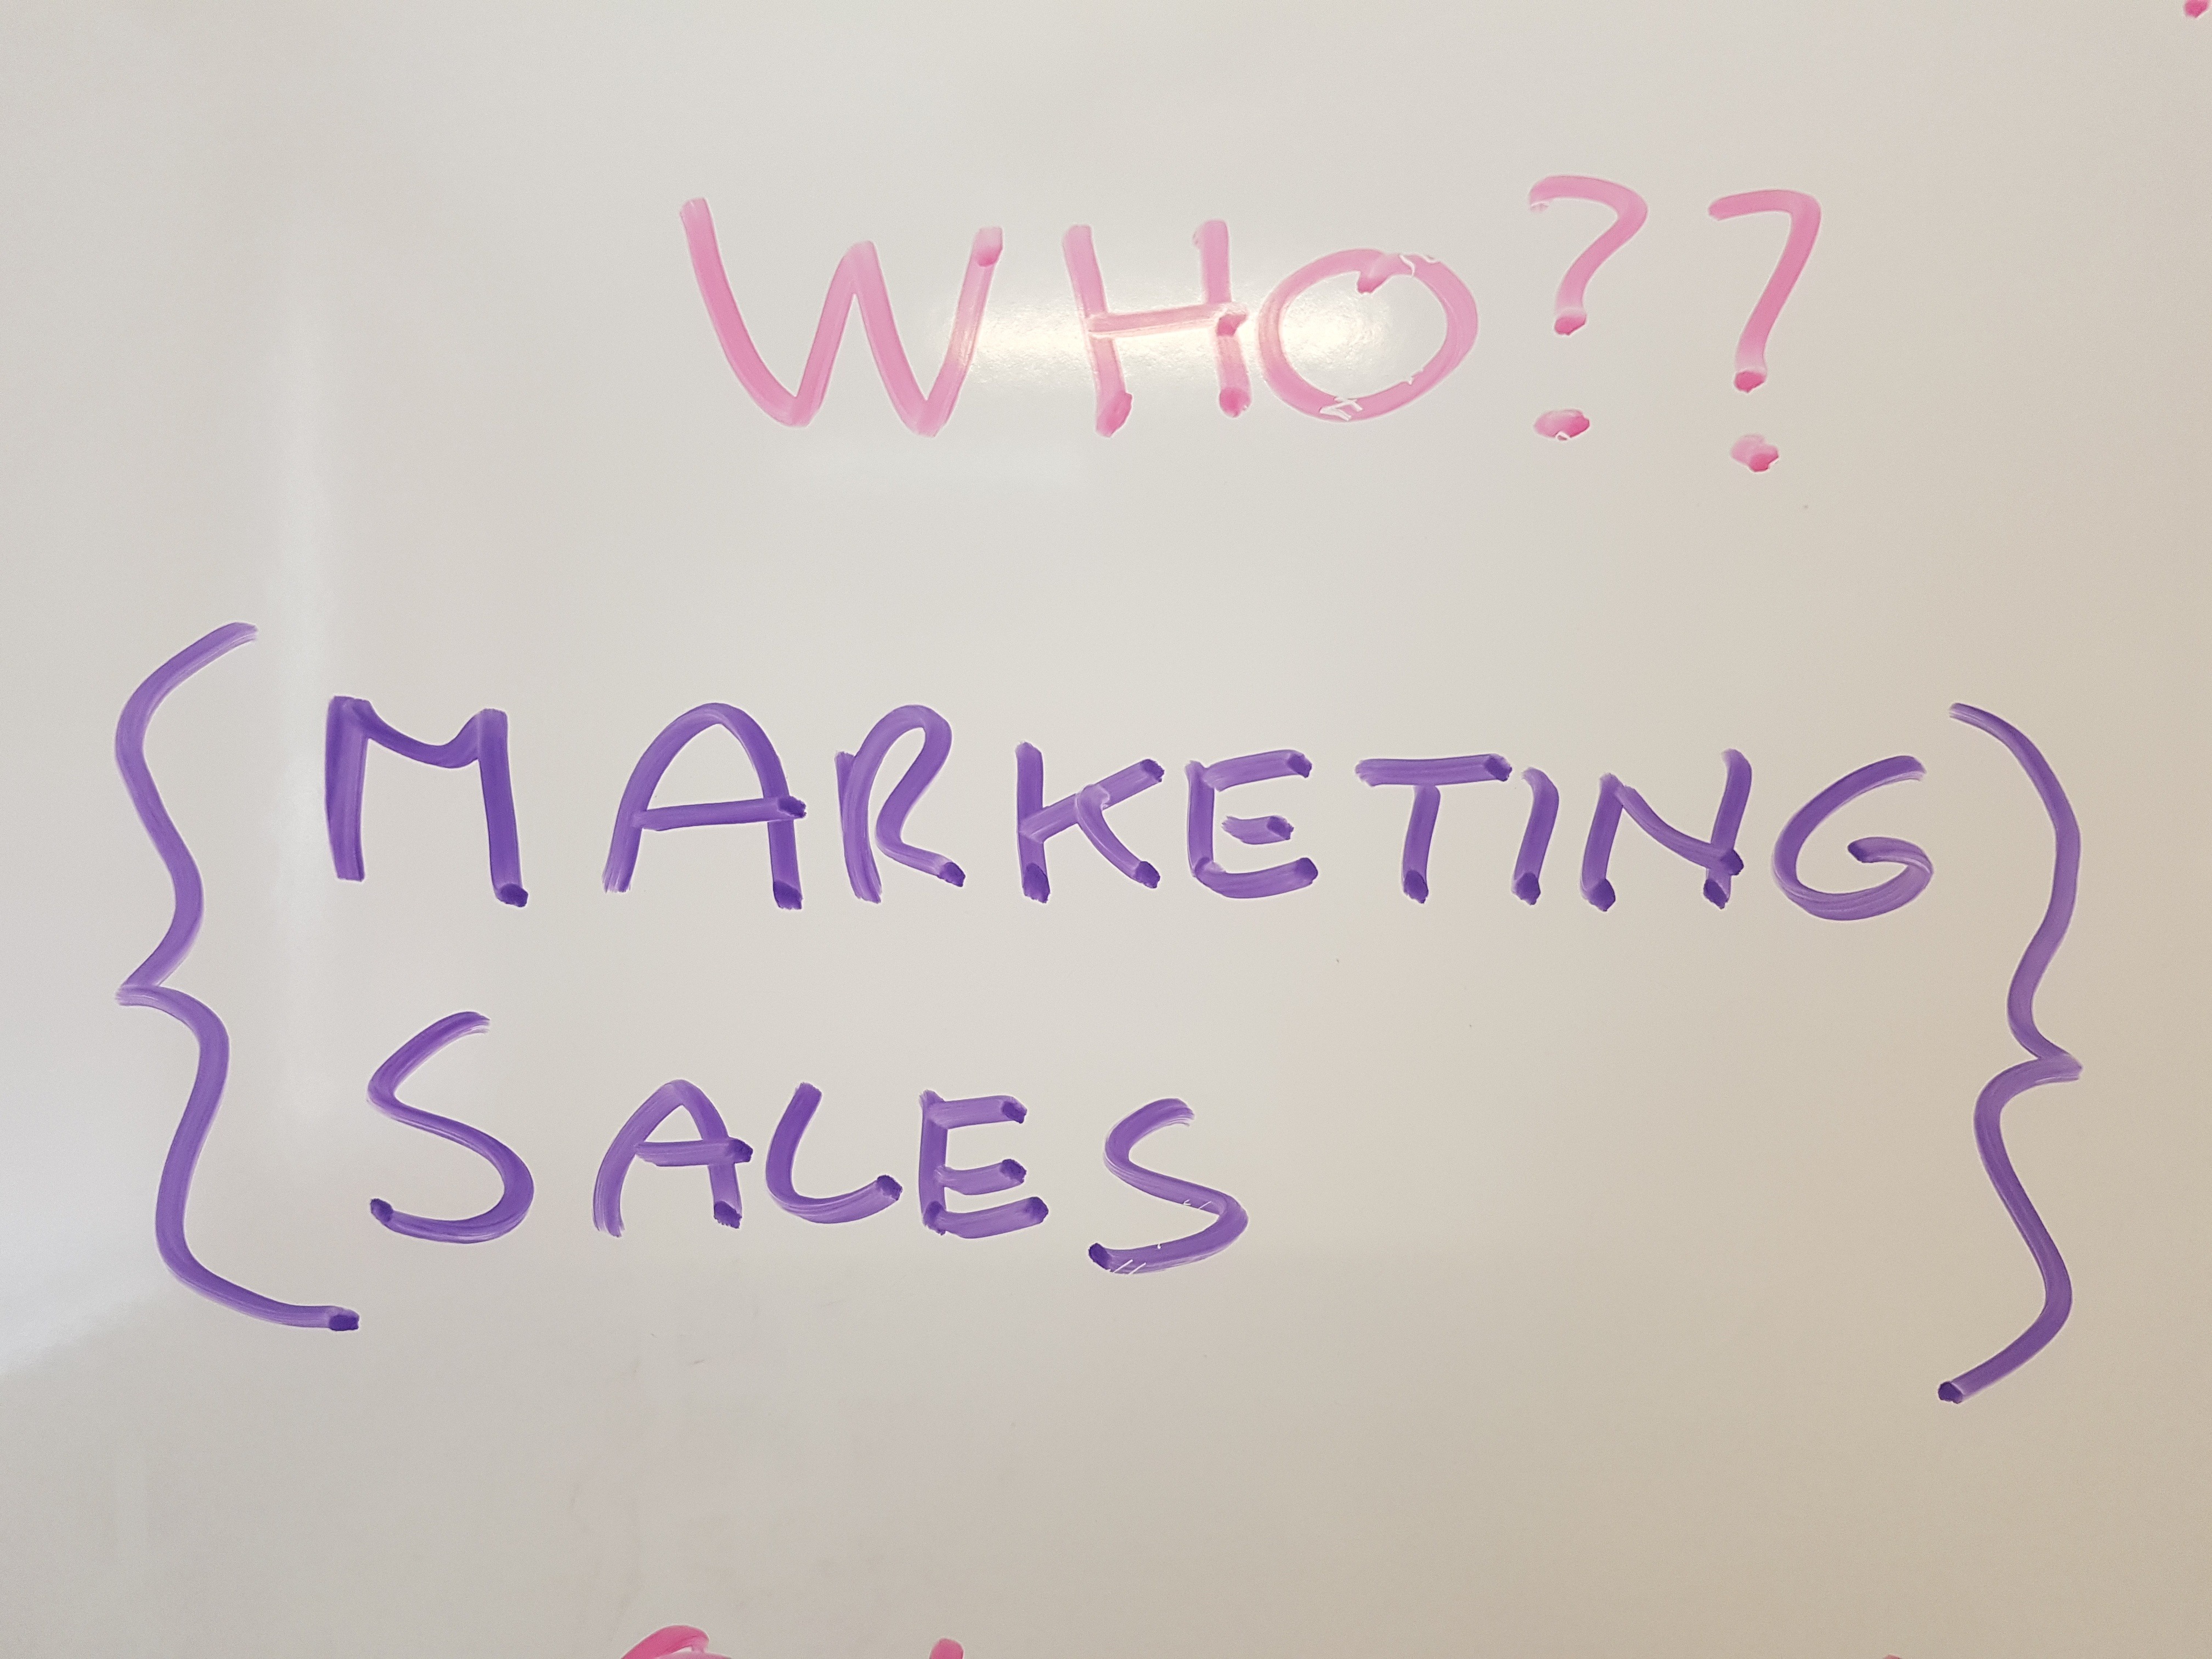 2 - marketing and sales.jpg